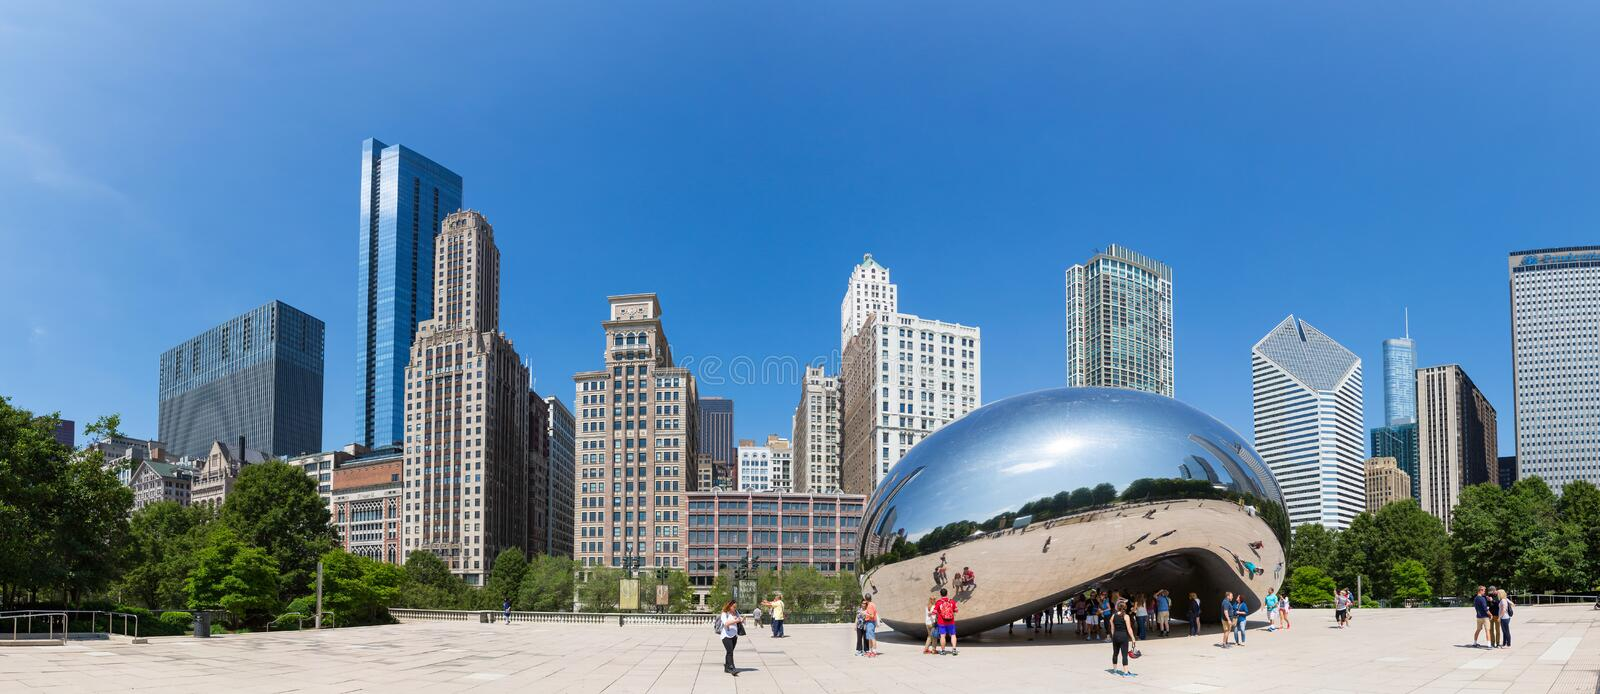 Cloud Gate sculpture in Millenium park. stock image